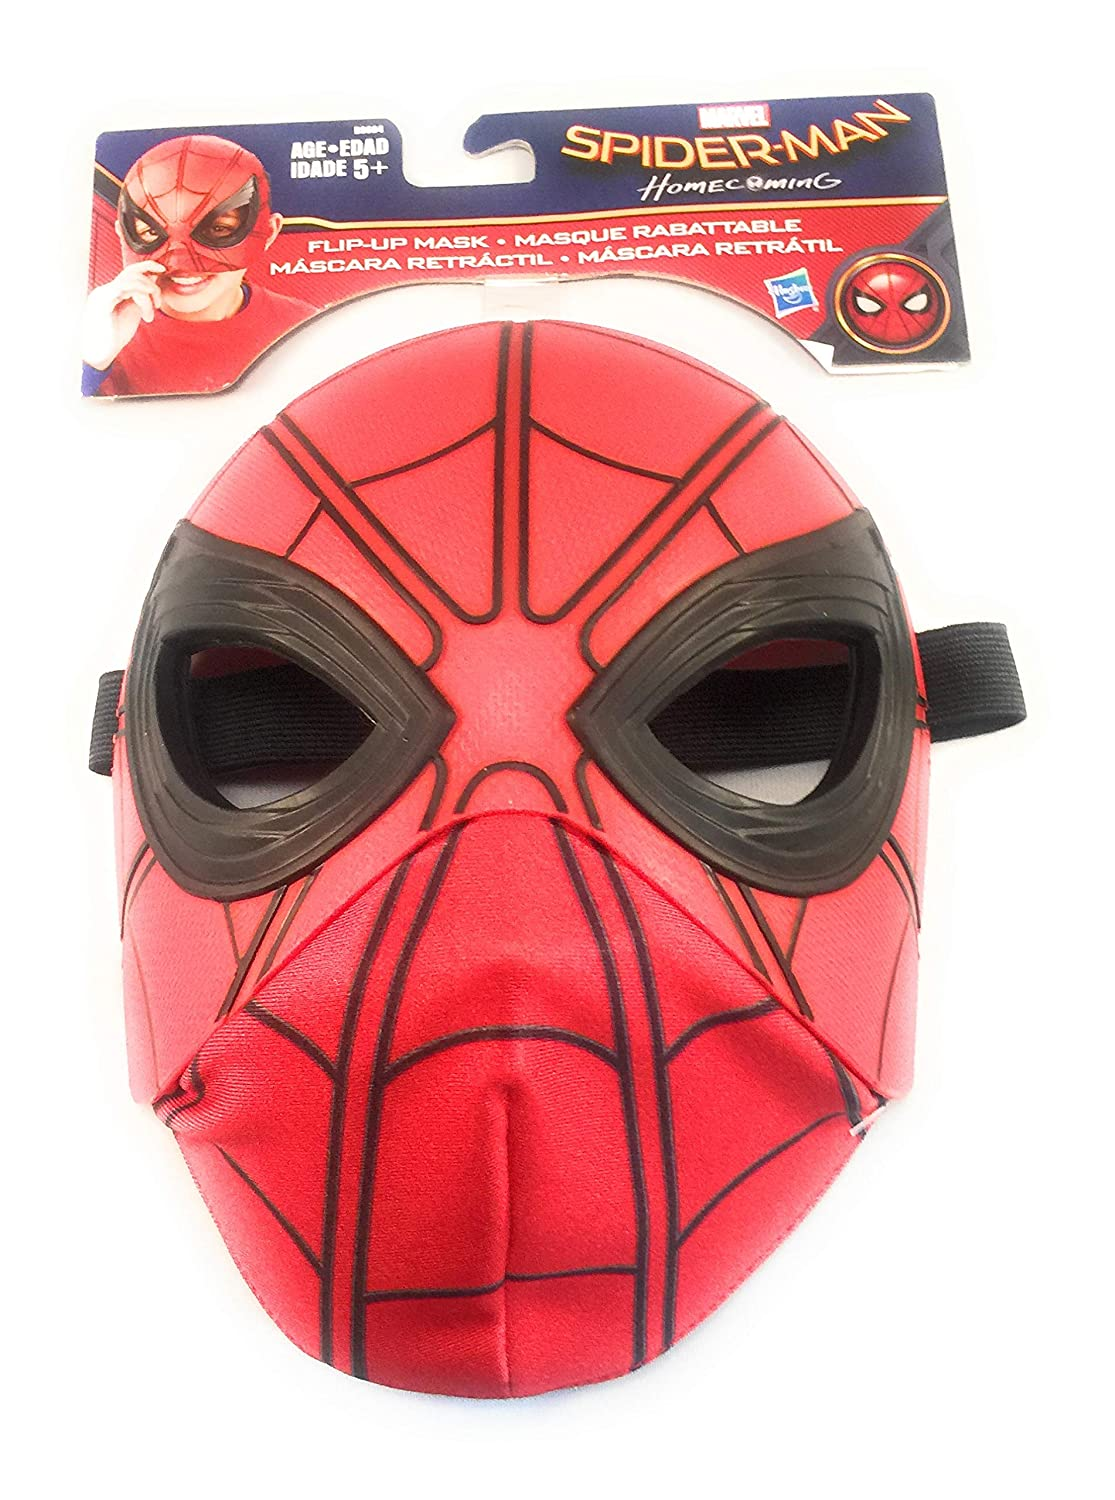 Amazon.com: Frootfel Marvel Ultimate Spiderman Titan Hero + Mask Bundle (2 Items): Toys & Games